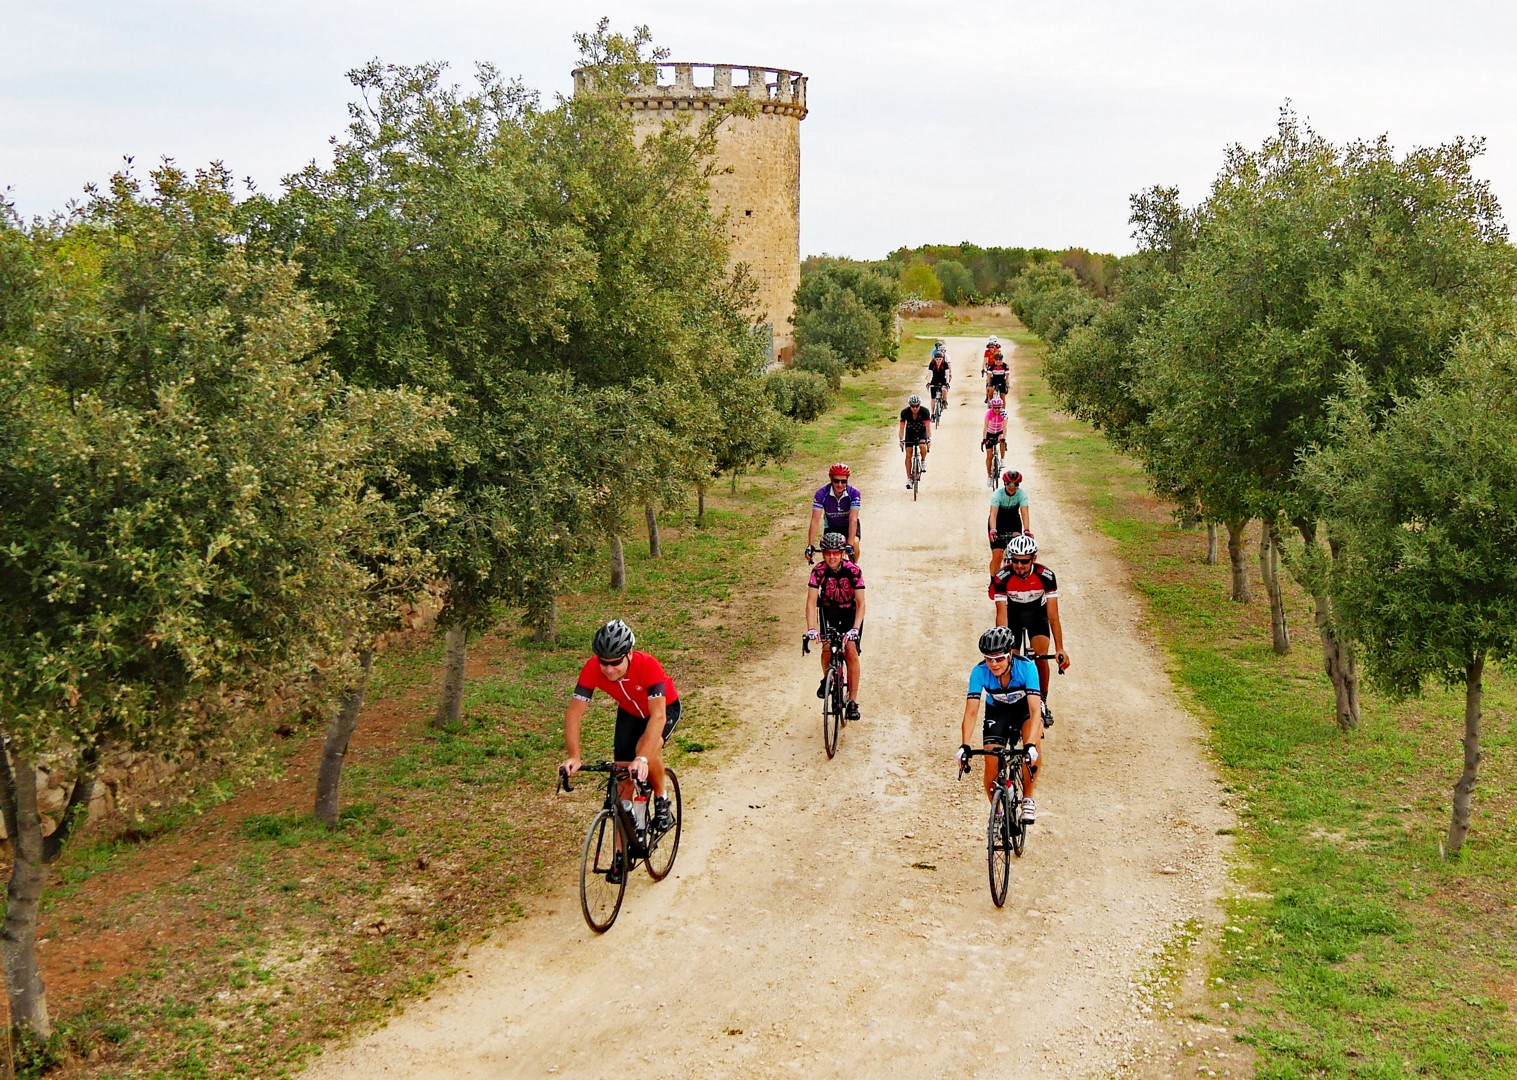 guided-road-cycling-adventure-through-olive-groves.jpg - Italy - Grand Traverse - South to North (22 days) - Guided Road Cycling Holiday - Road Cycling